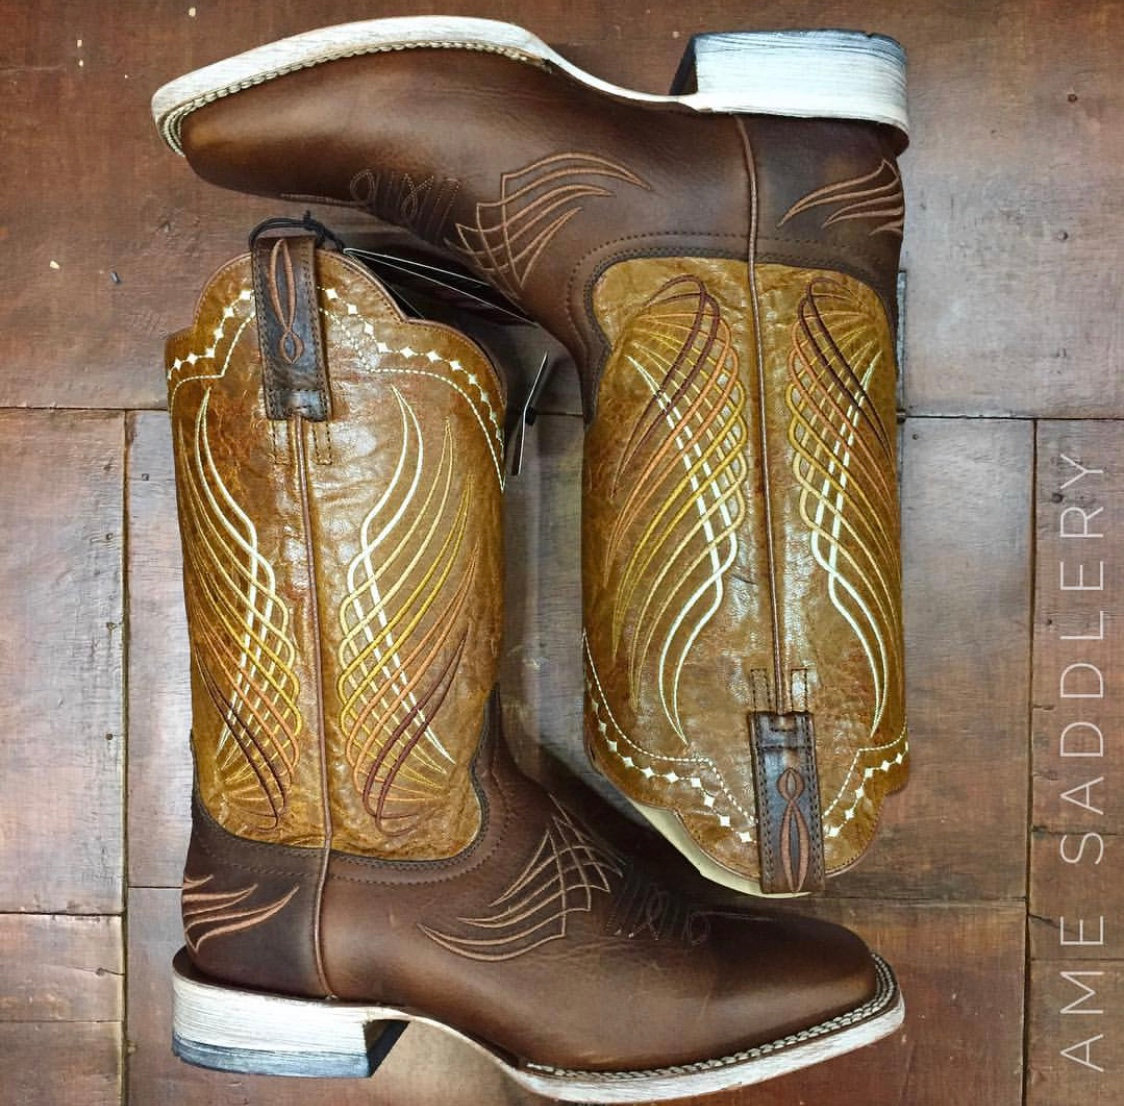 deac35a823a MENS ARIAT MECATE BOOT